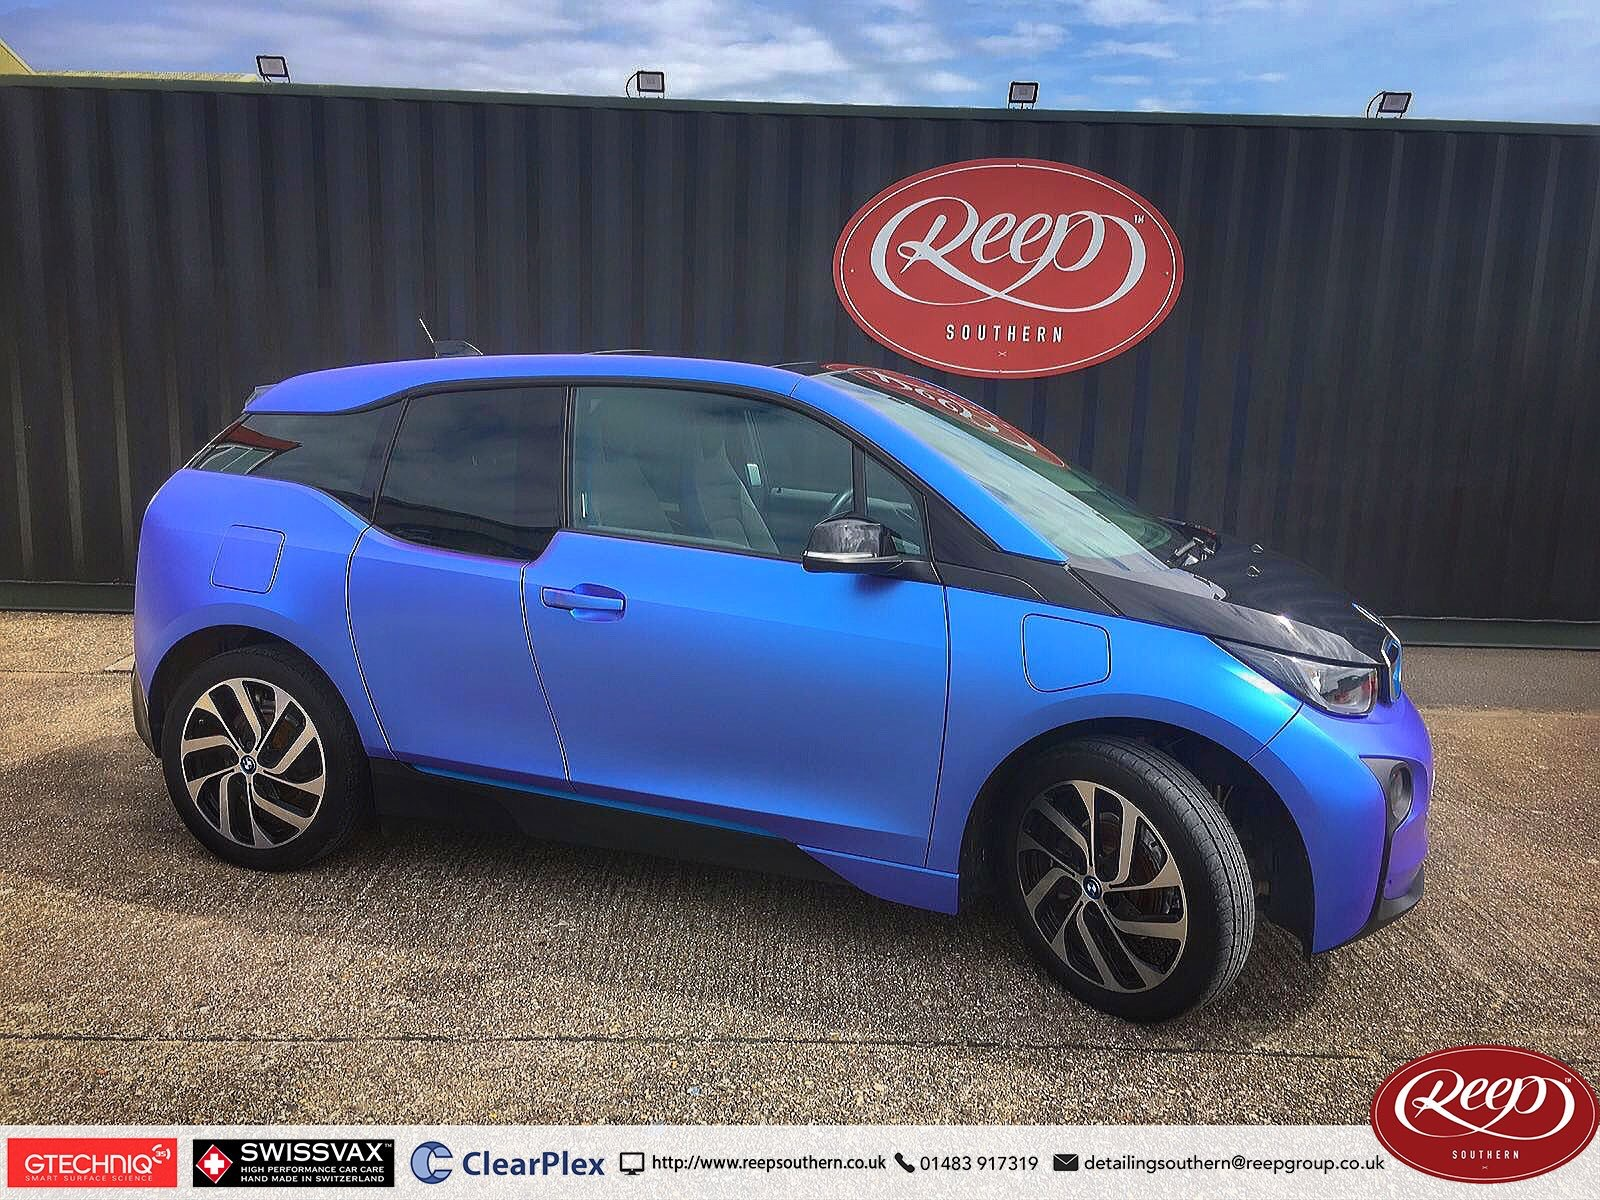 Bmw I3 Colour Change Full Vehicle Wrap Reep Southern